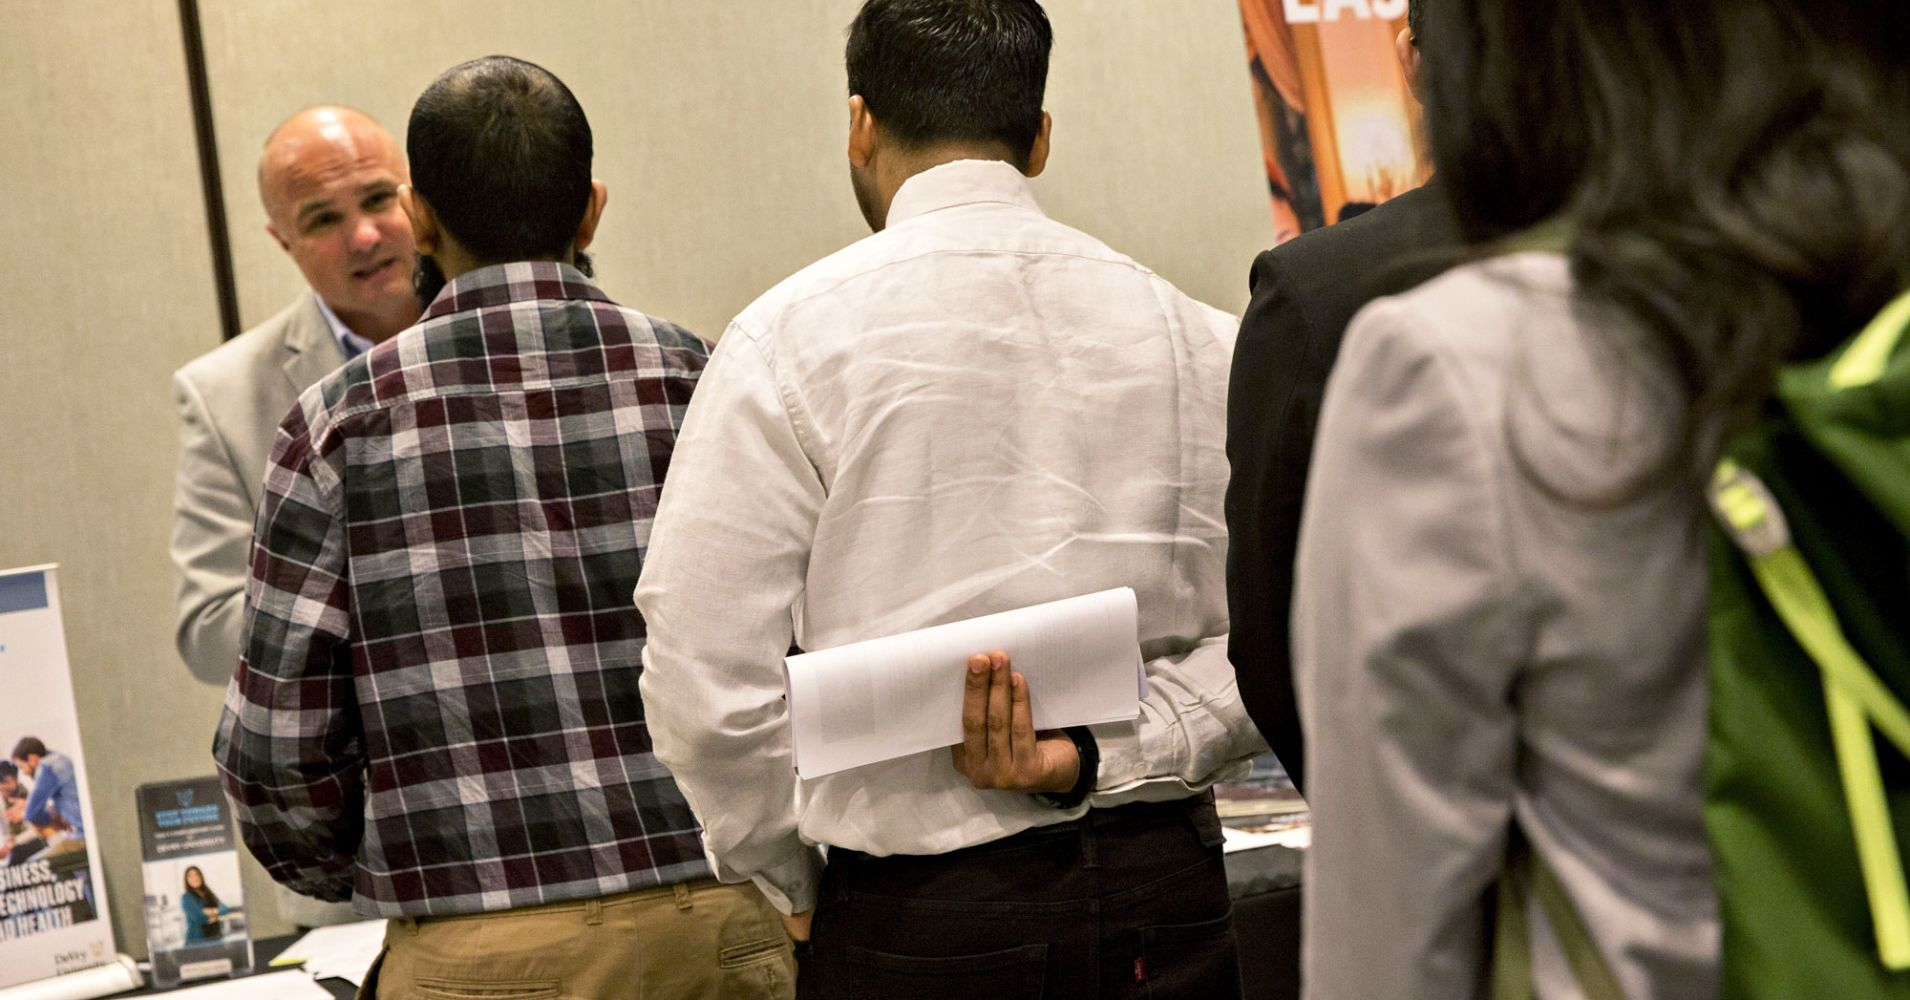 Job seekers wait to speak to a representative during a Coast-to-Coast Career Fair in Chicago, Illinois.